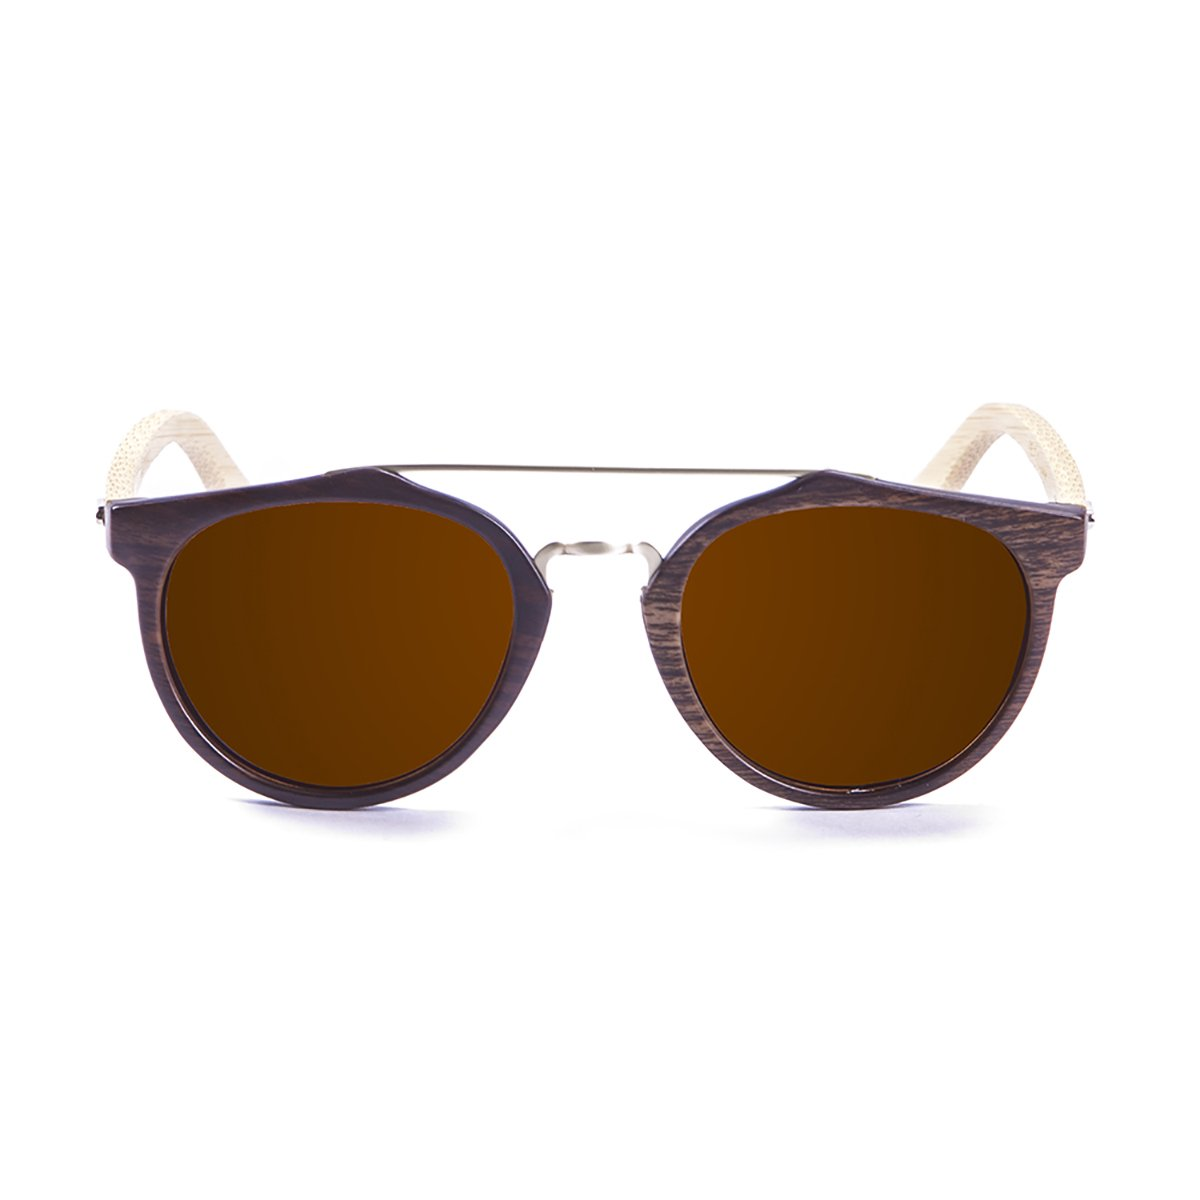 Paloalto Sunglasses Richmond Gafas de Sol Unisex, Brown Dark ...